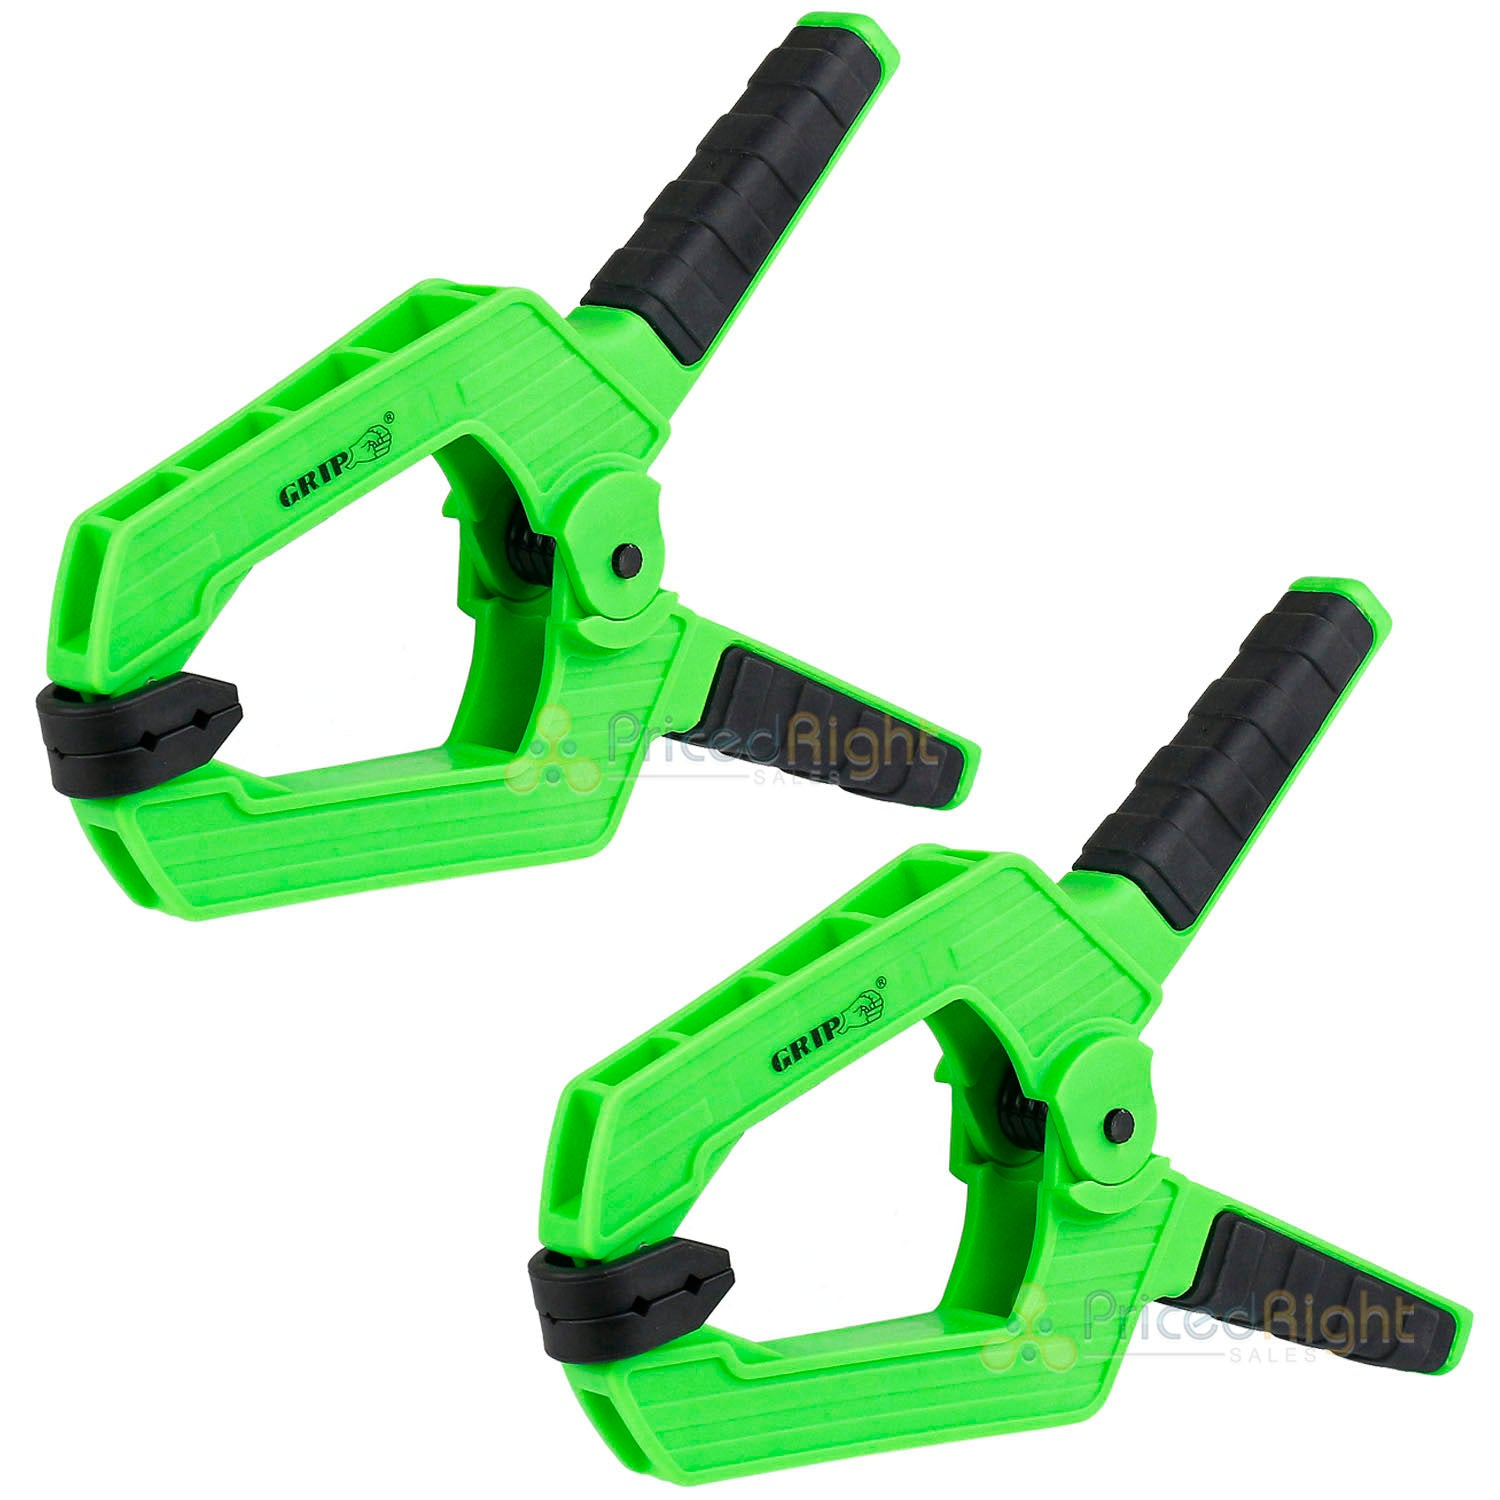 "2 Pack Heavy Duty 9"" Spring Clamp Thermoplastic Anti-Slip Grip Tools 34009"